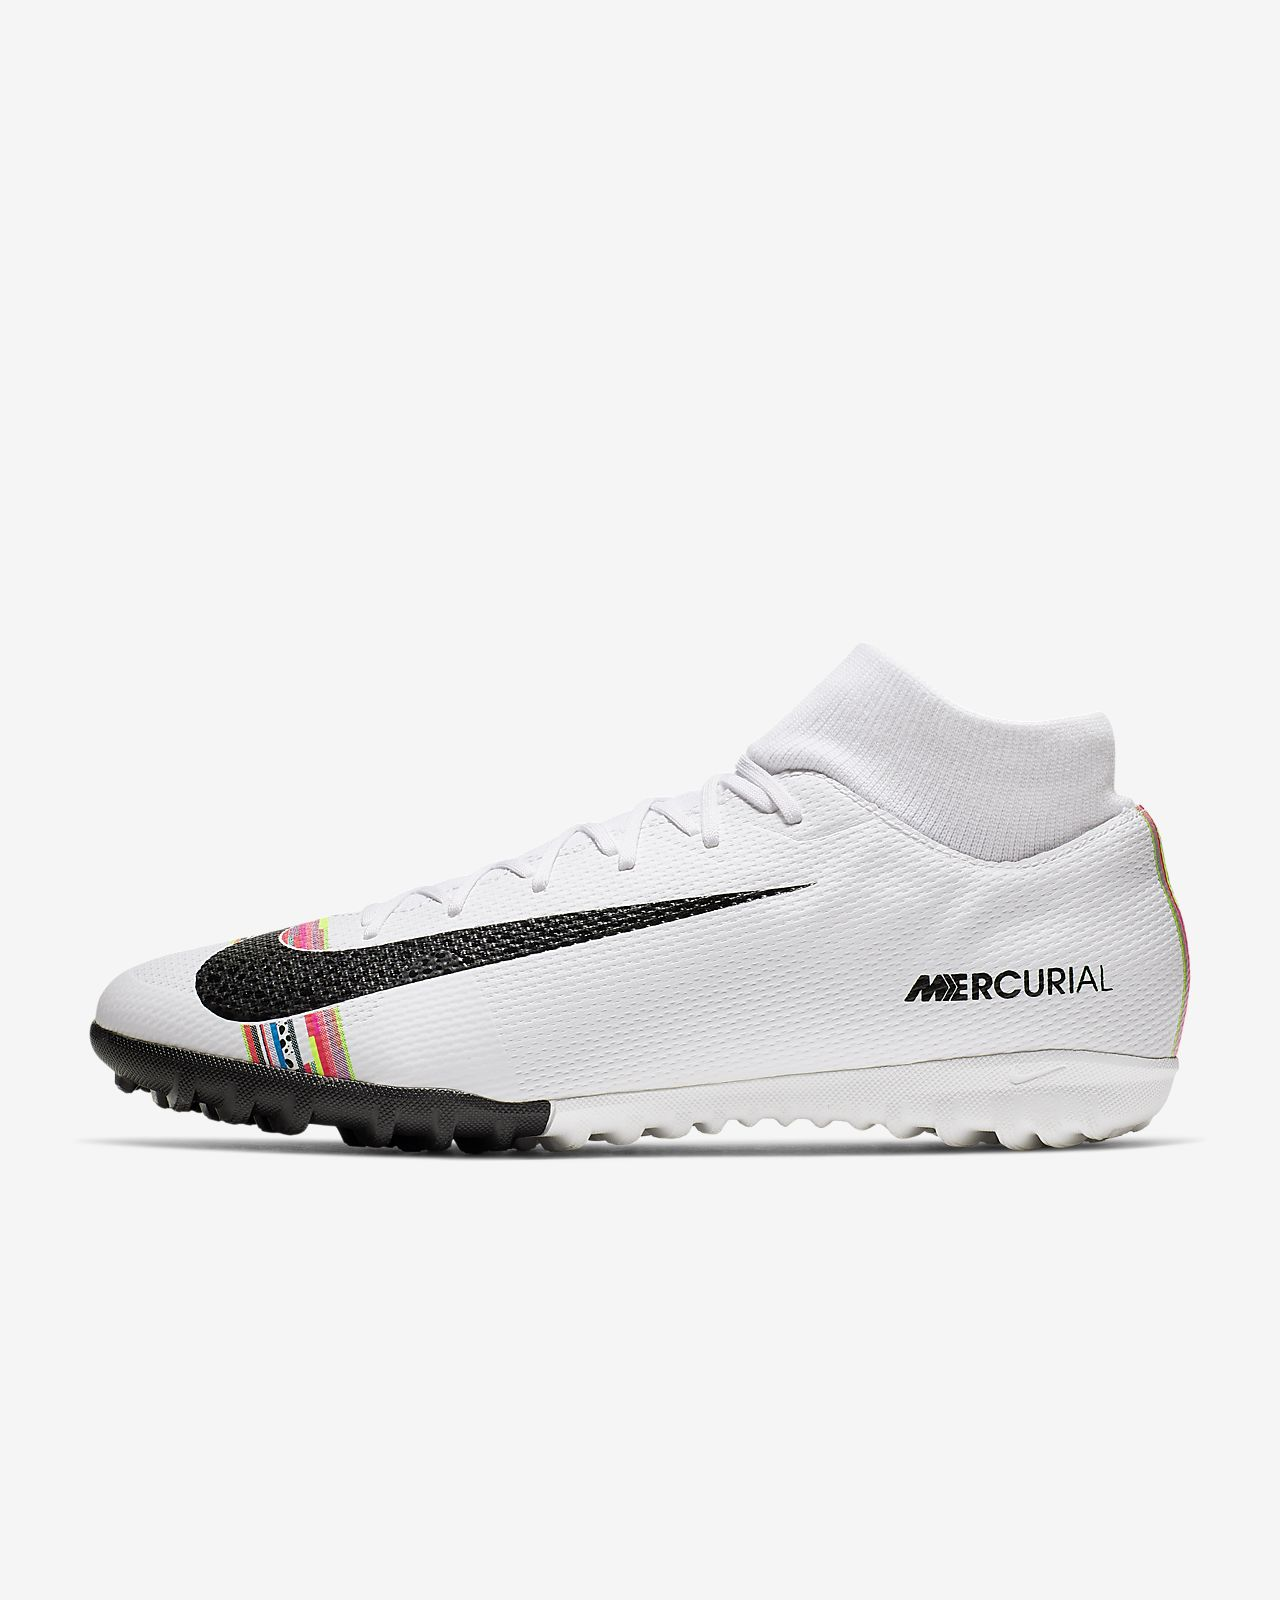 Nike SuperflyX 6 Academy LVL UP TF fotballsko til grus/turf